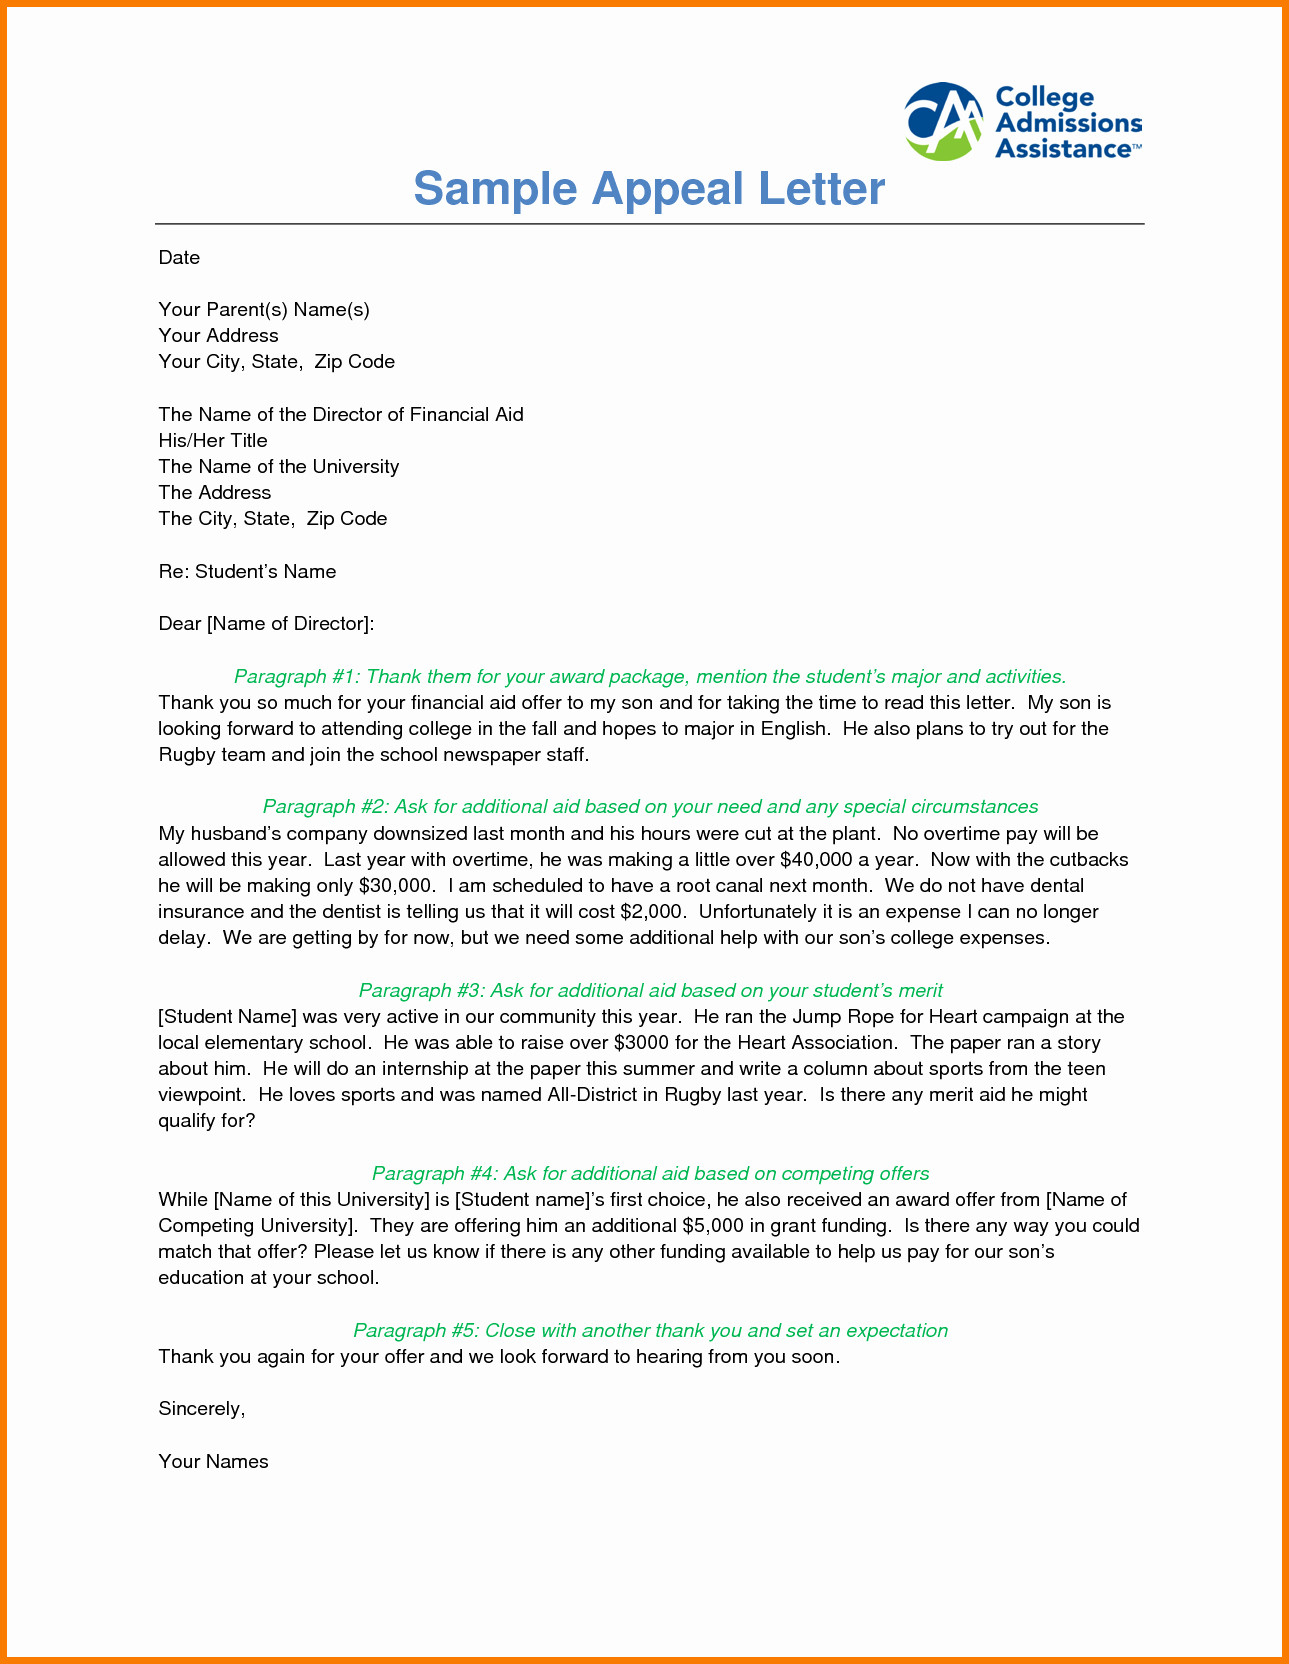 mortgage reinstatement letter template Collection-Mortgage Appeal Letter Sample Incredible Mortgage Reinstatement Letter Example Inspirational Payoff Letters 17-p